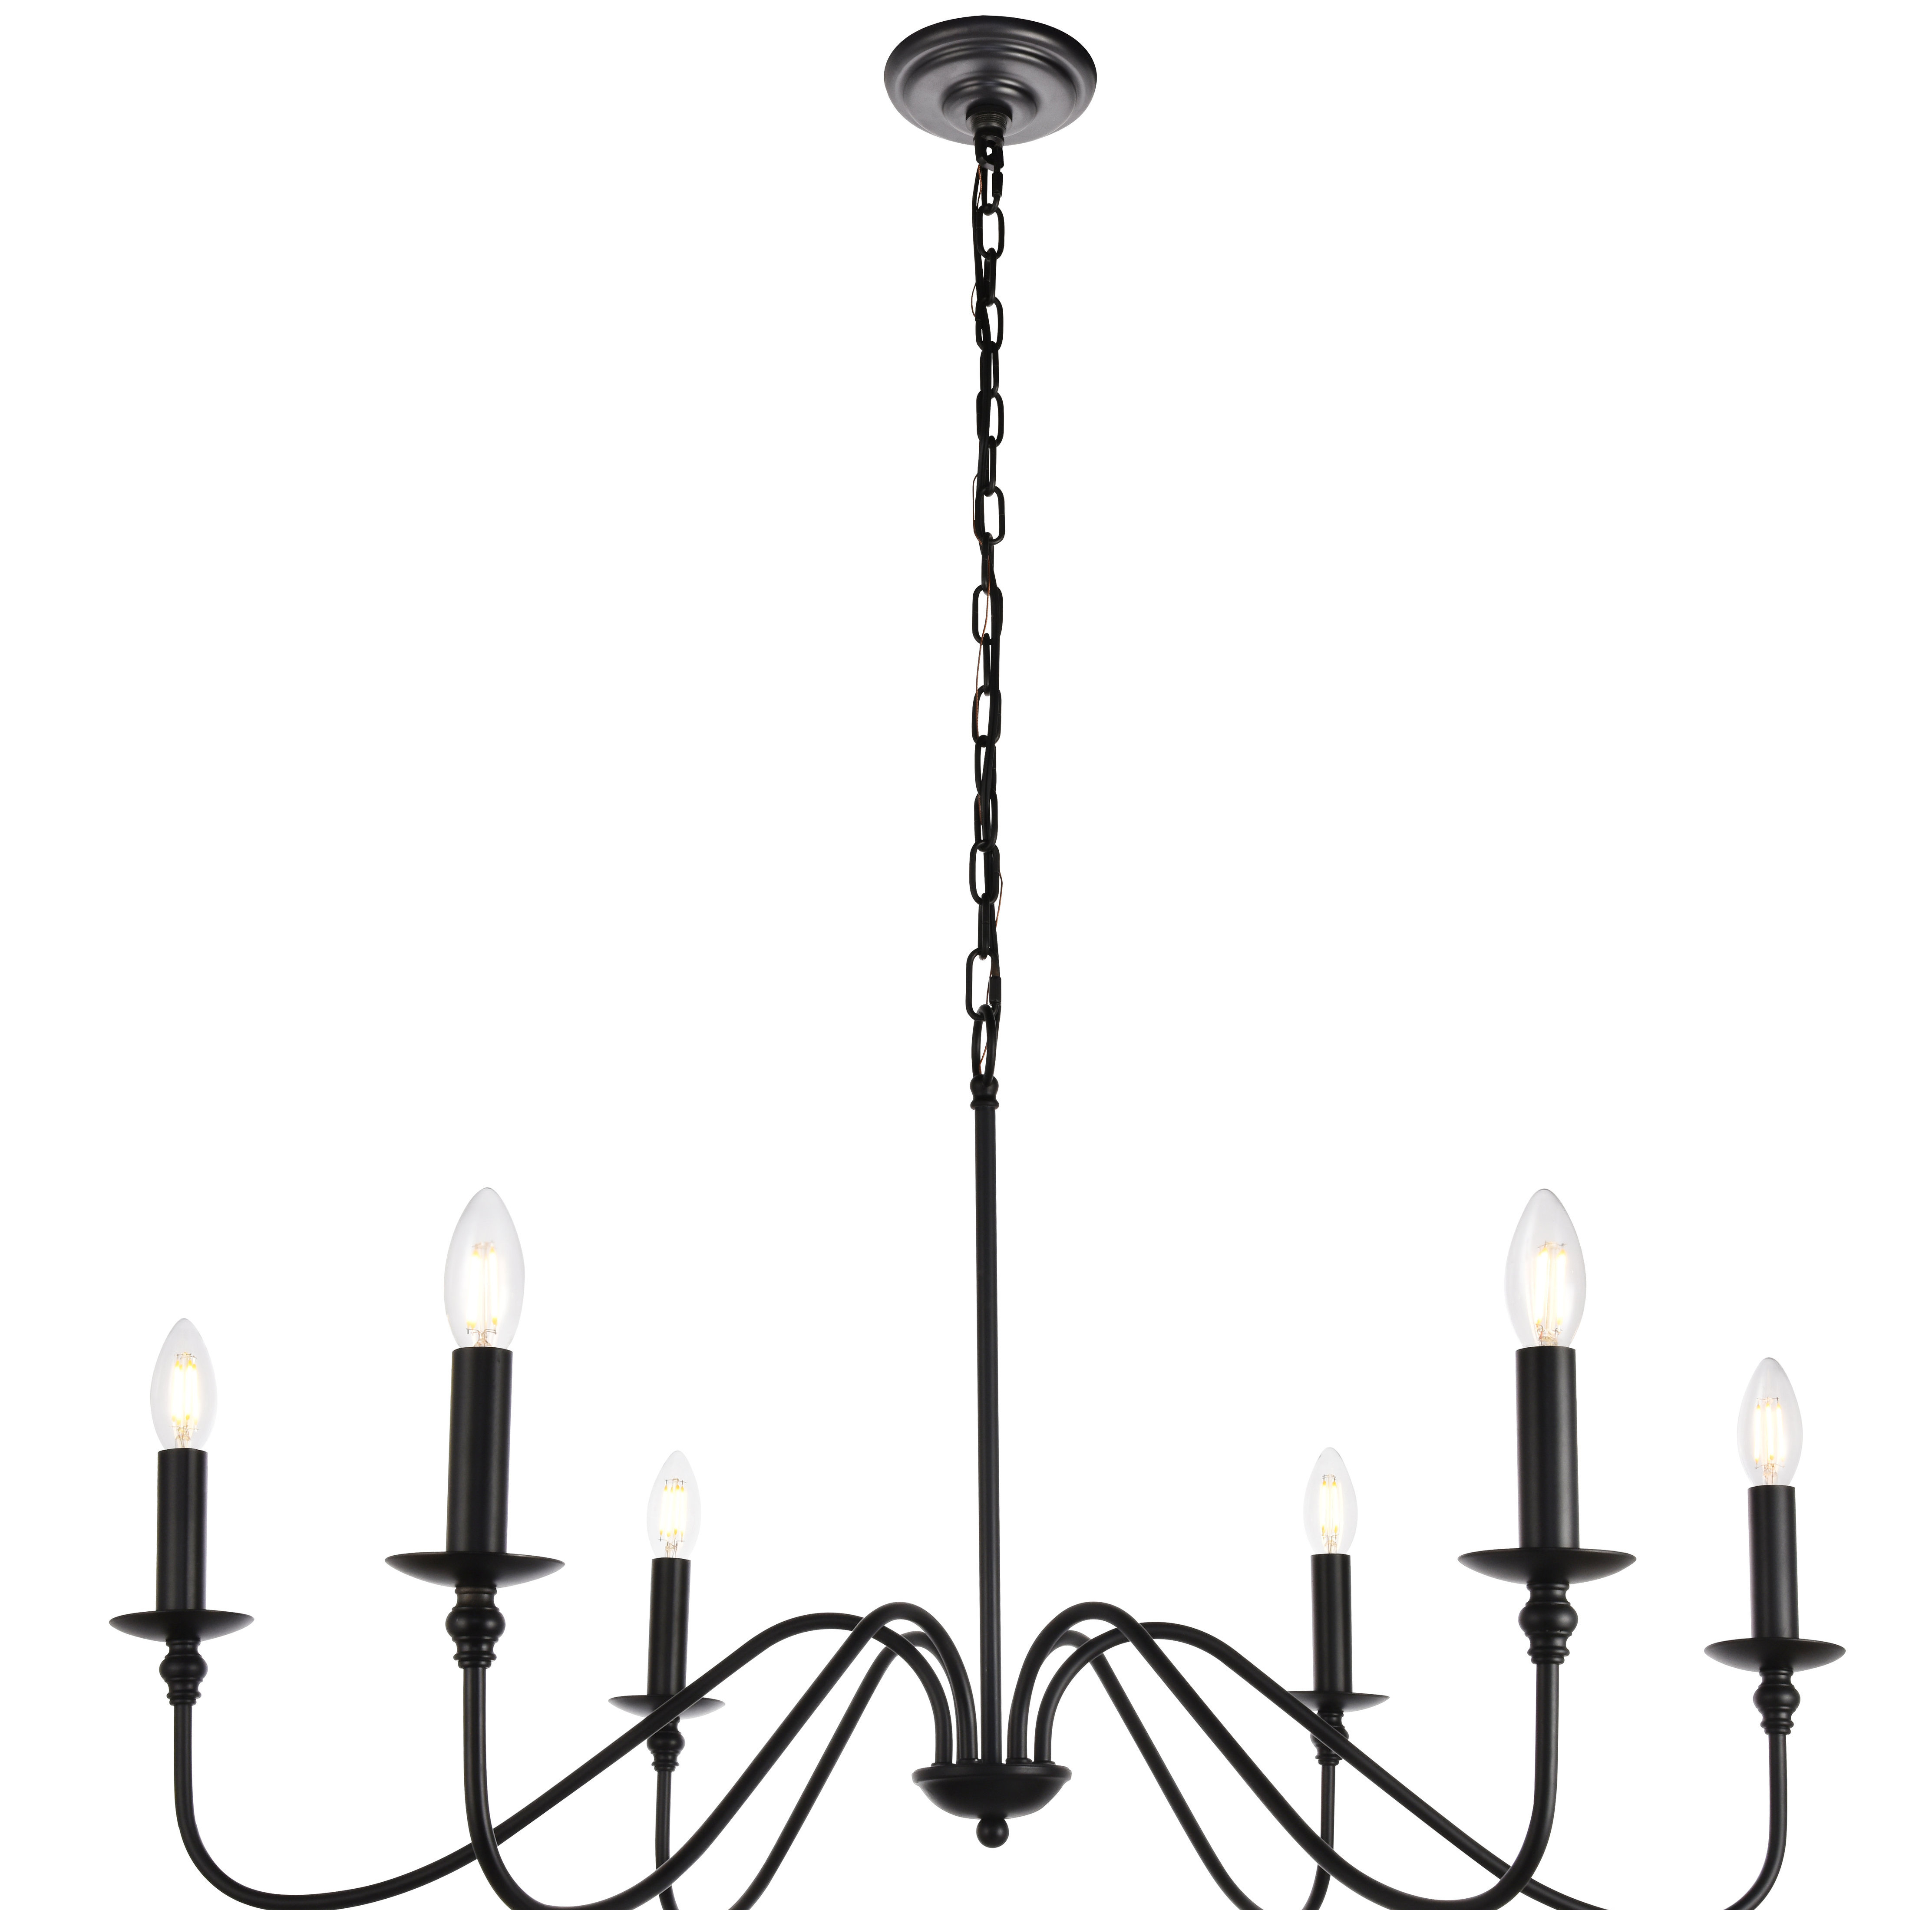 Hamza 6 Light Candle Style Chandelier In Shaylee 6 Light Candle Style Chandeliers (View 12 of 30)